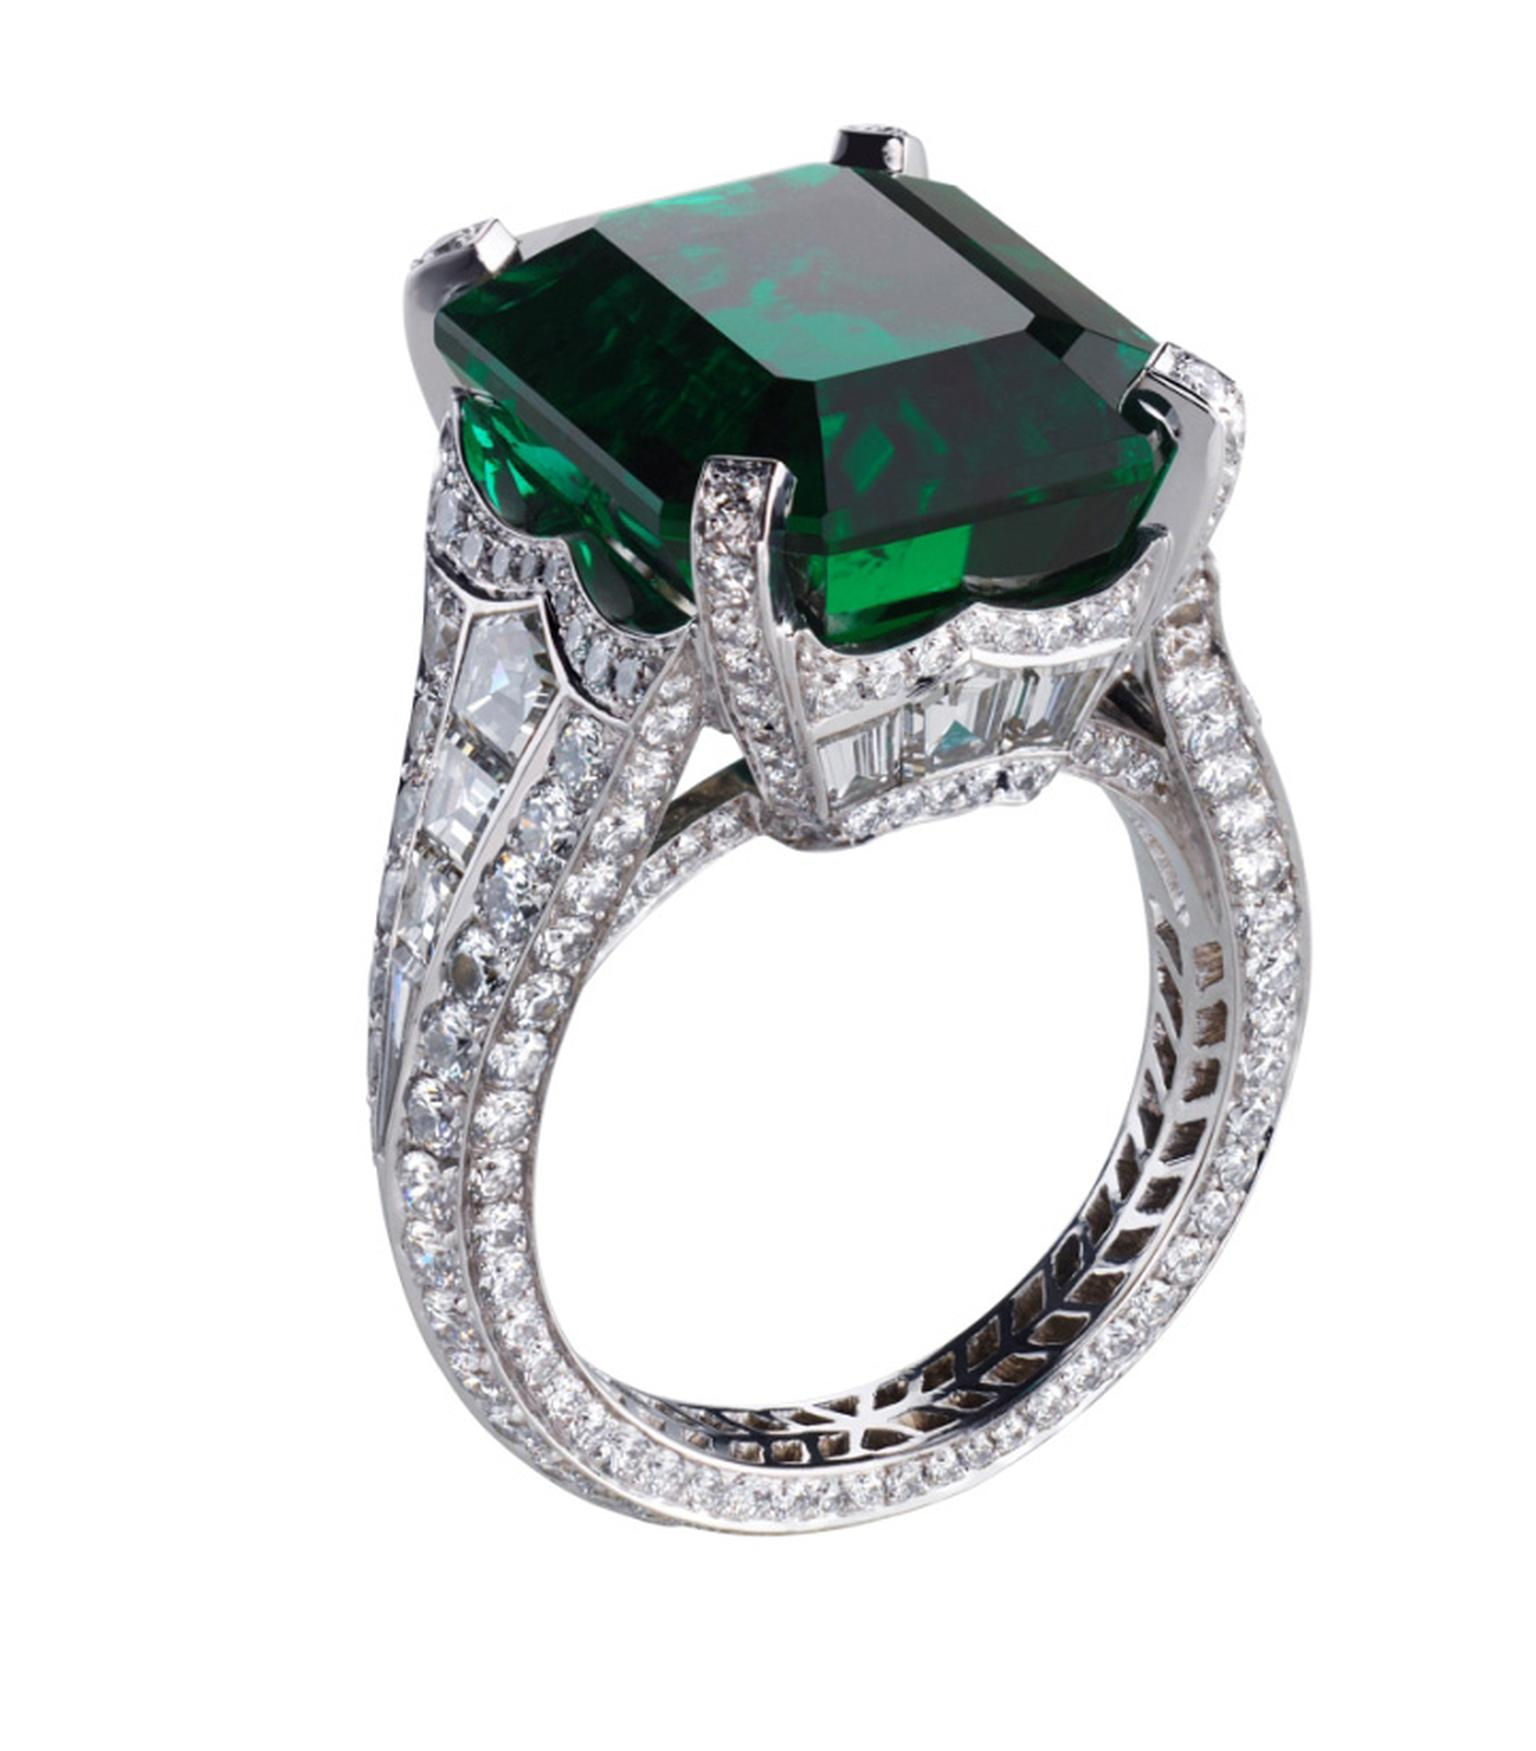 Fabergé Devotion emerald ring in platinum, with a central rectangle cut Gemfields Zambian emerald